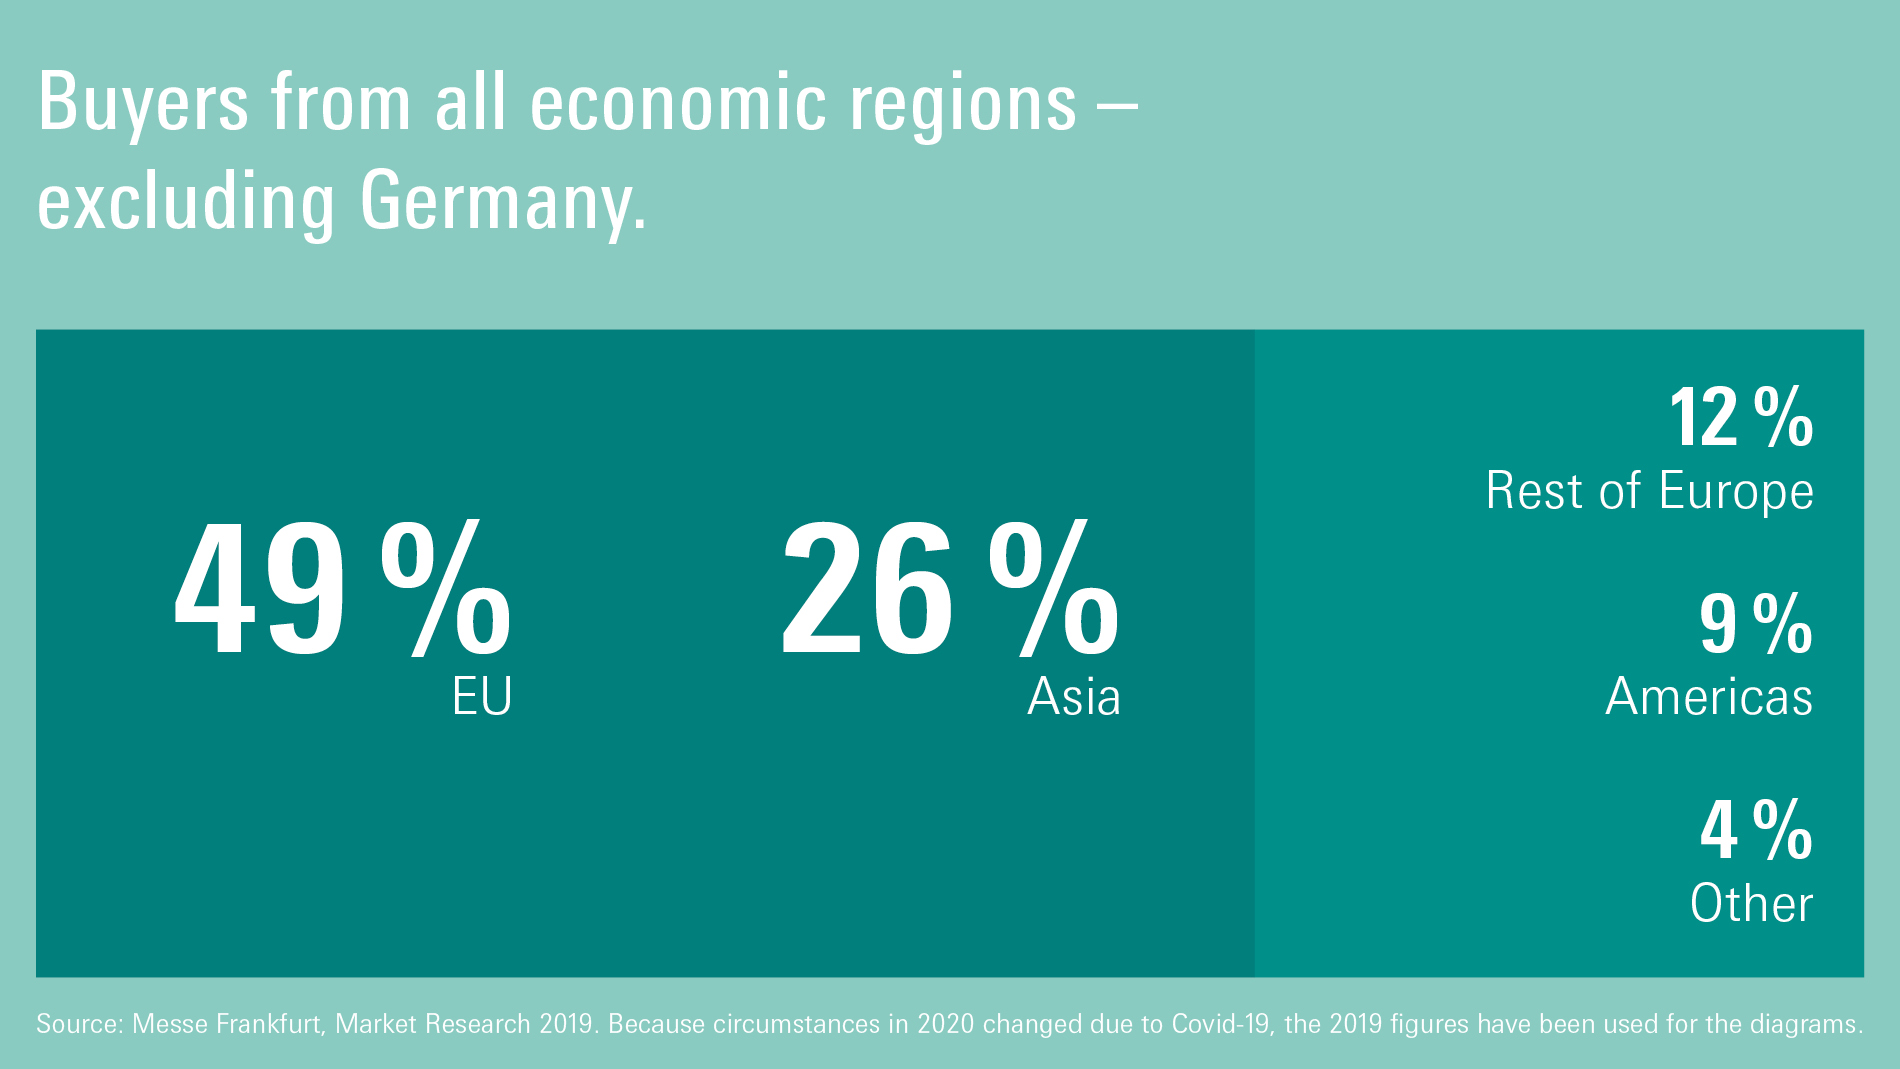 Ambiente - buyers from all economic regions 2020